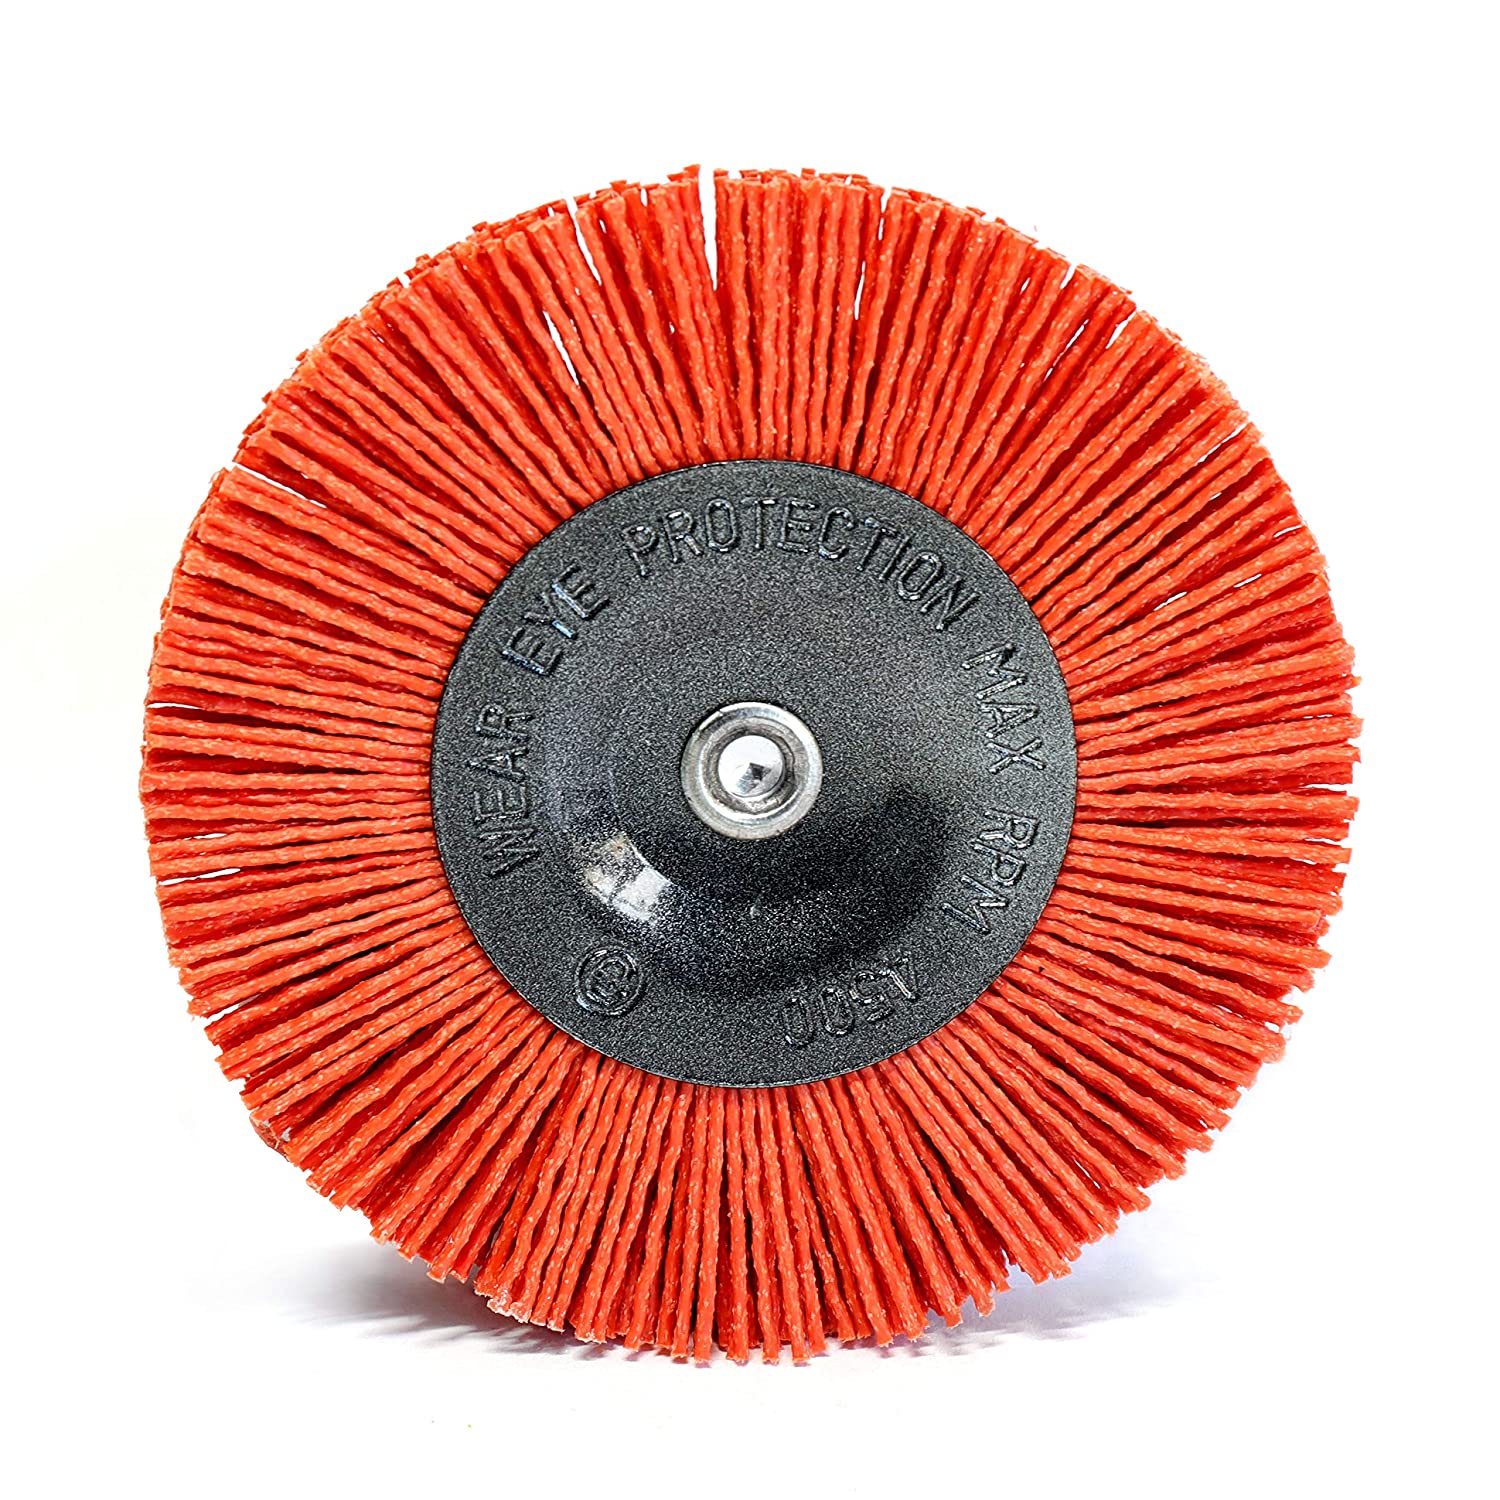 6.35 mm hexagonal shaft 1//4 S/&R Nylon Disc brush // wire brush drill bit 100 mm with AGGRESSIVE-NYLON-WIRE for cleaning and polishing wood and metal